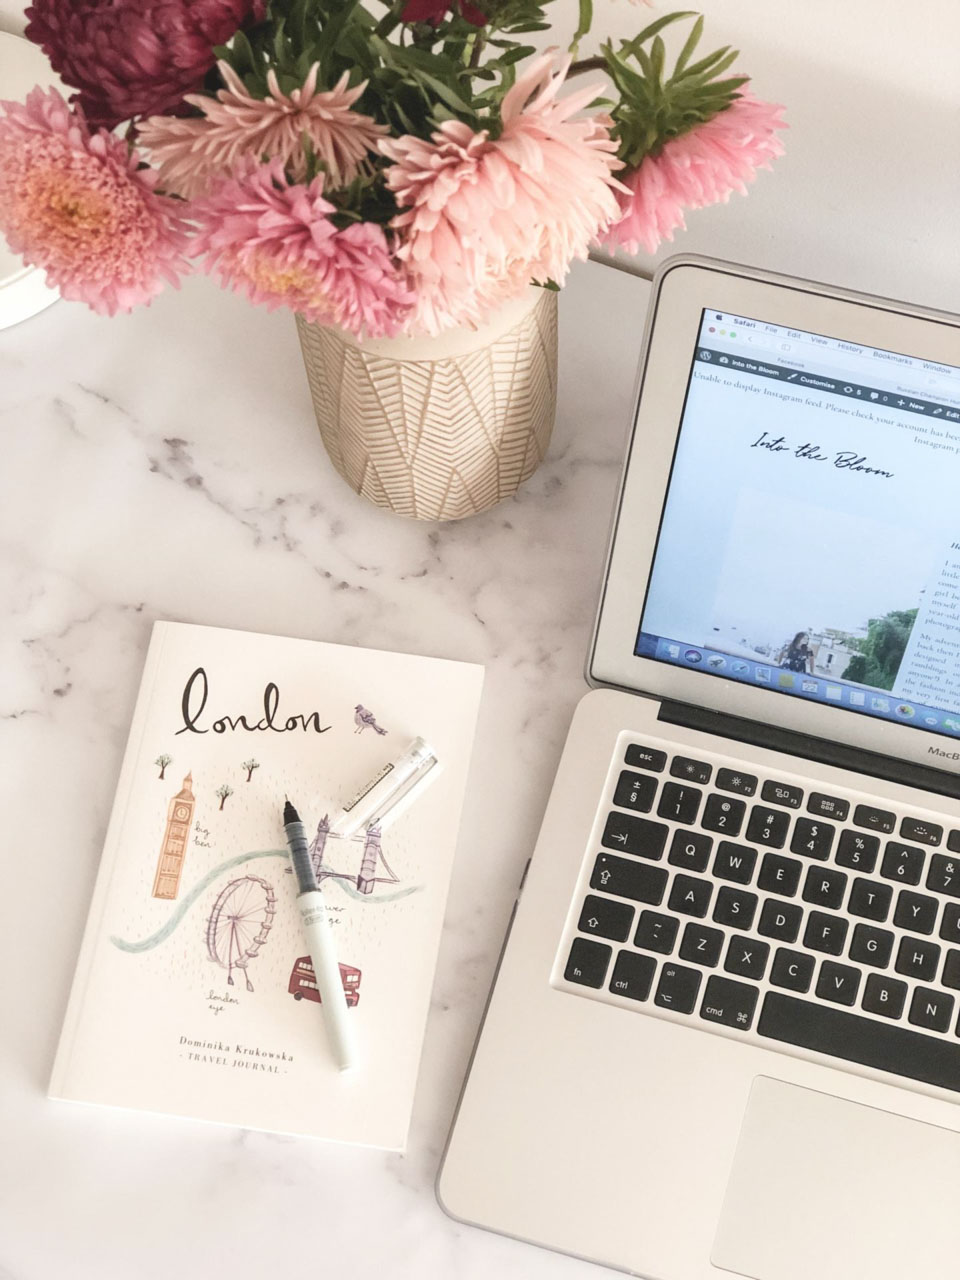 A travel journal, a vase with fresh flowers and a laptop on a marble desk